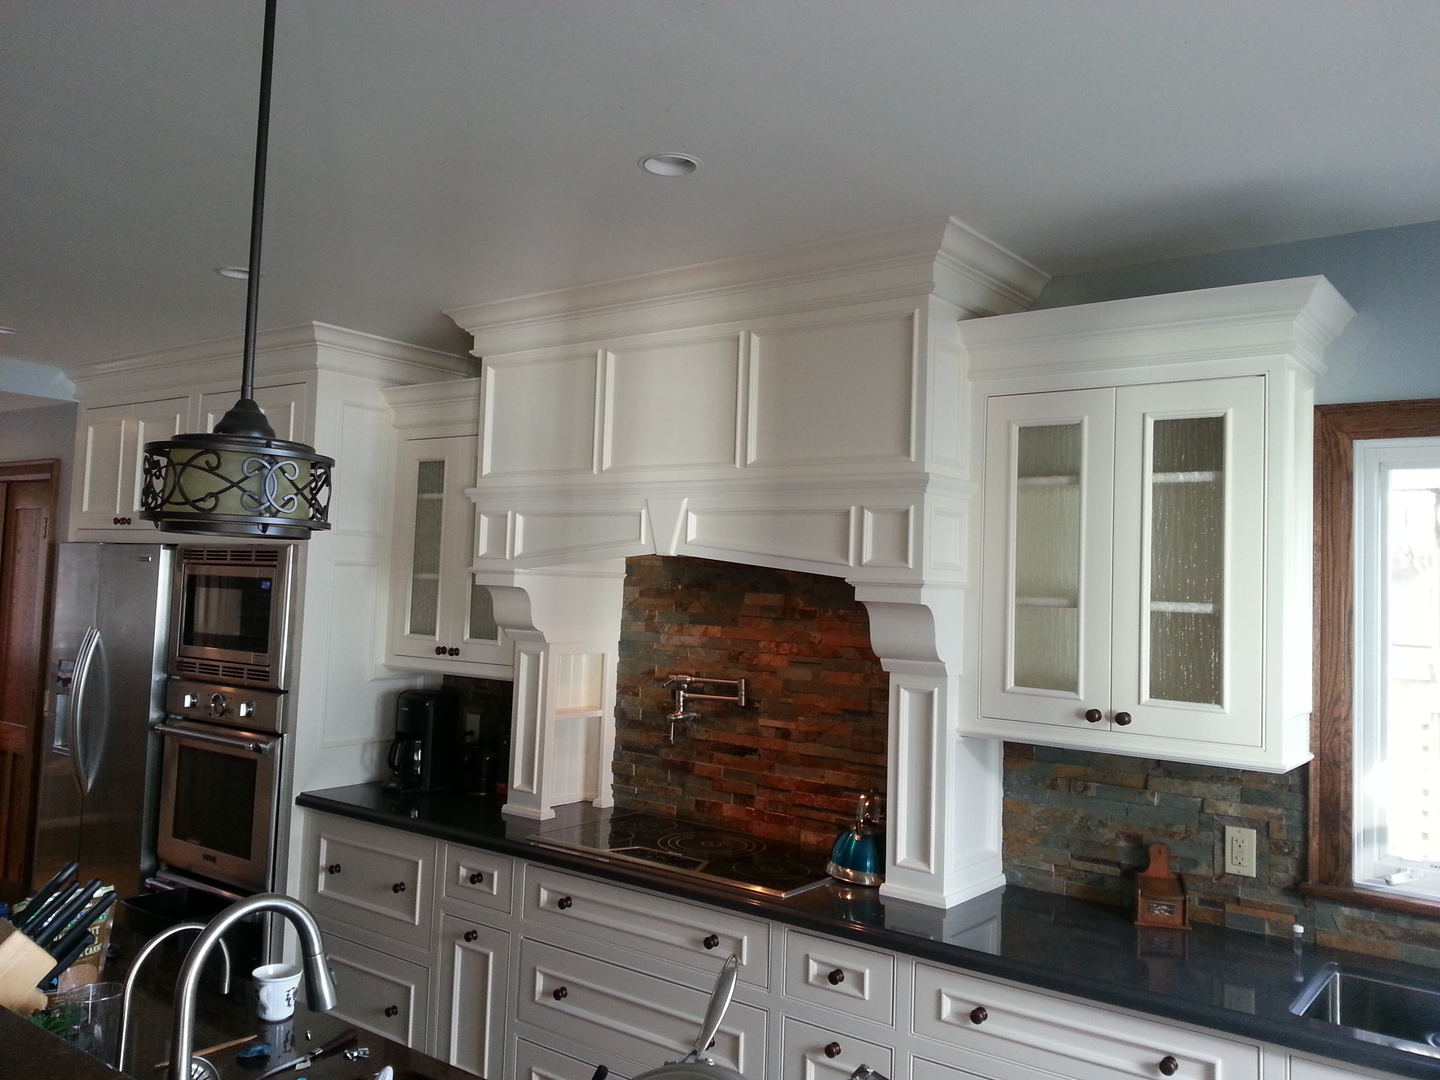 Respray Kitchen Cabinets Spray It Like New Kitchen Cabinet Painting Kitchen Cabinet